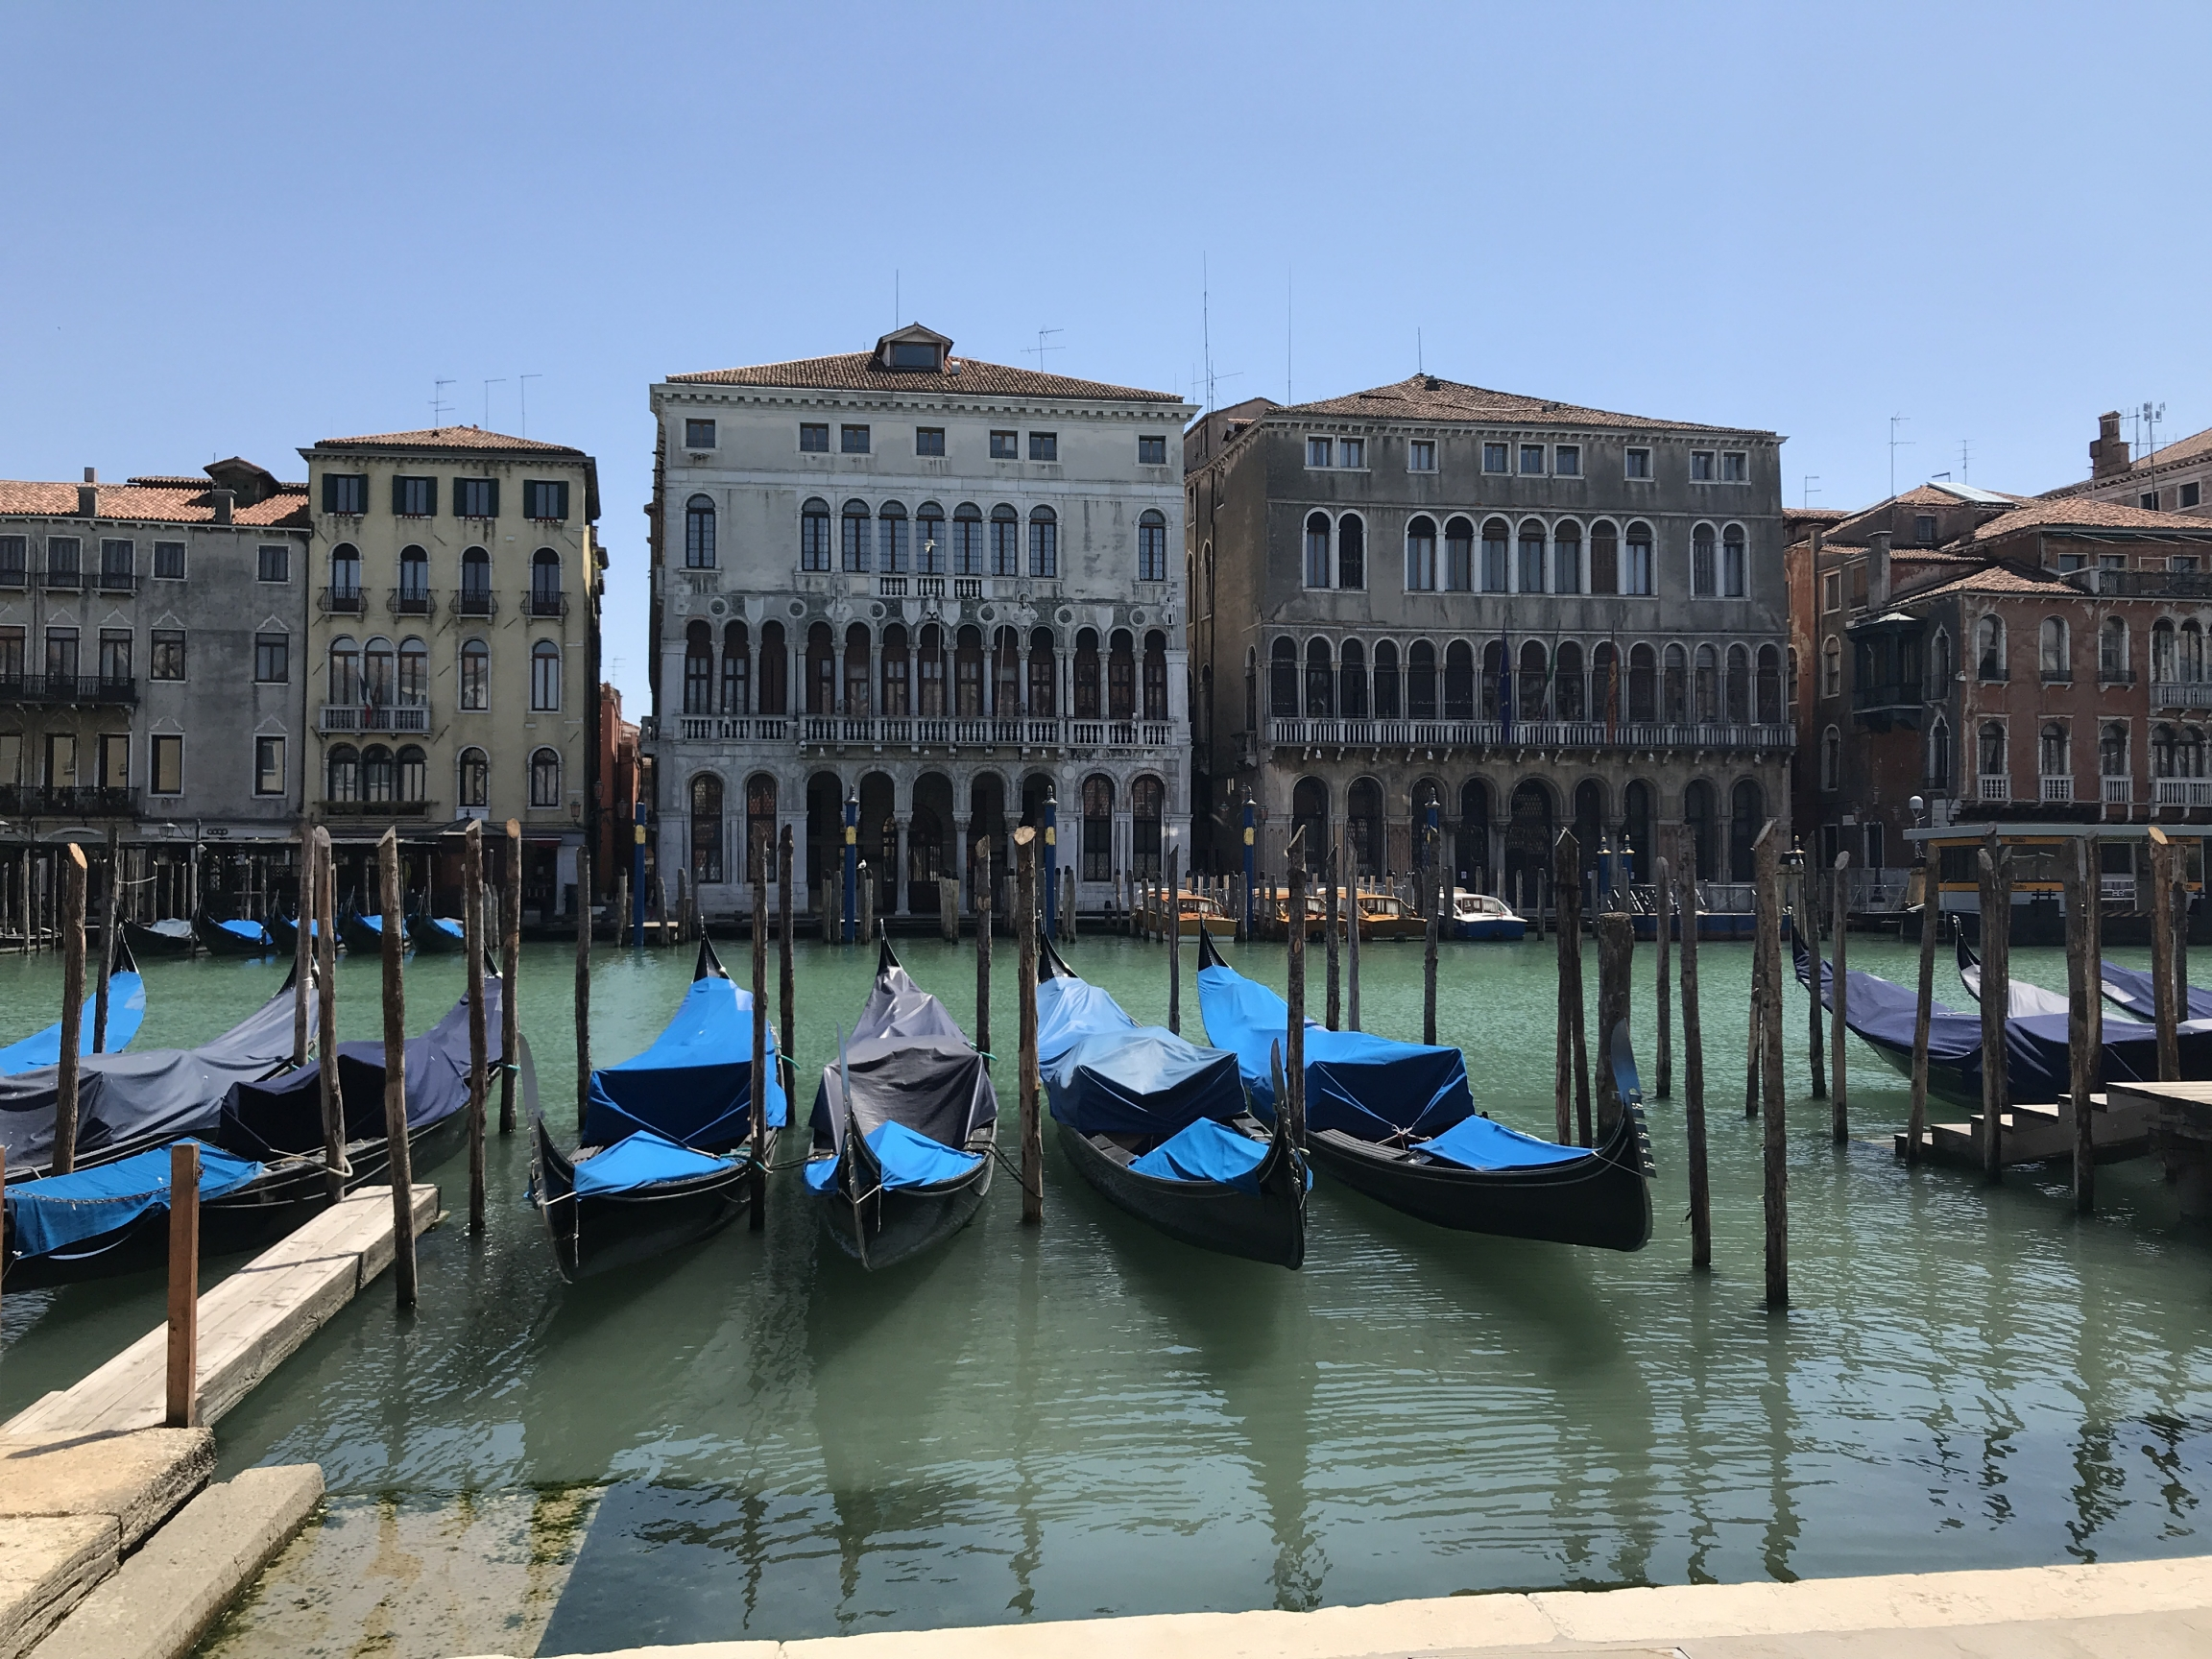 The area around the Rialto Bridge, on the Grand Canal in Venice, Italy, has been quiet since the country's lockdown went into effect.